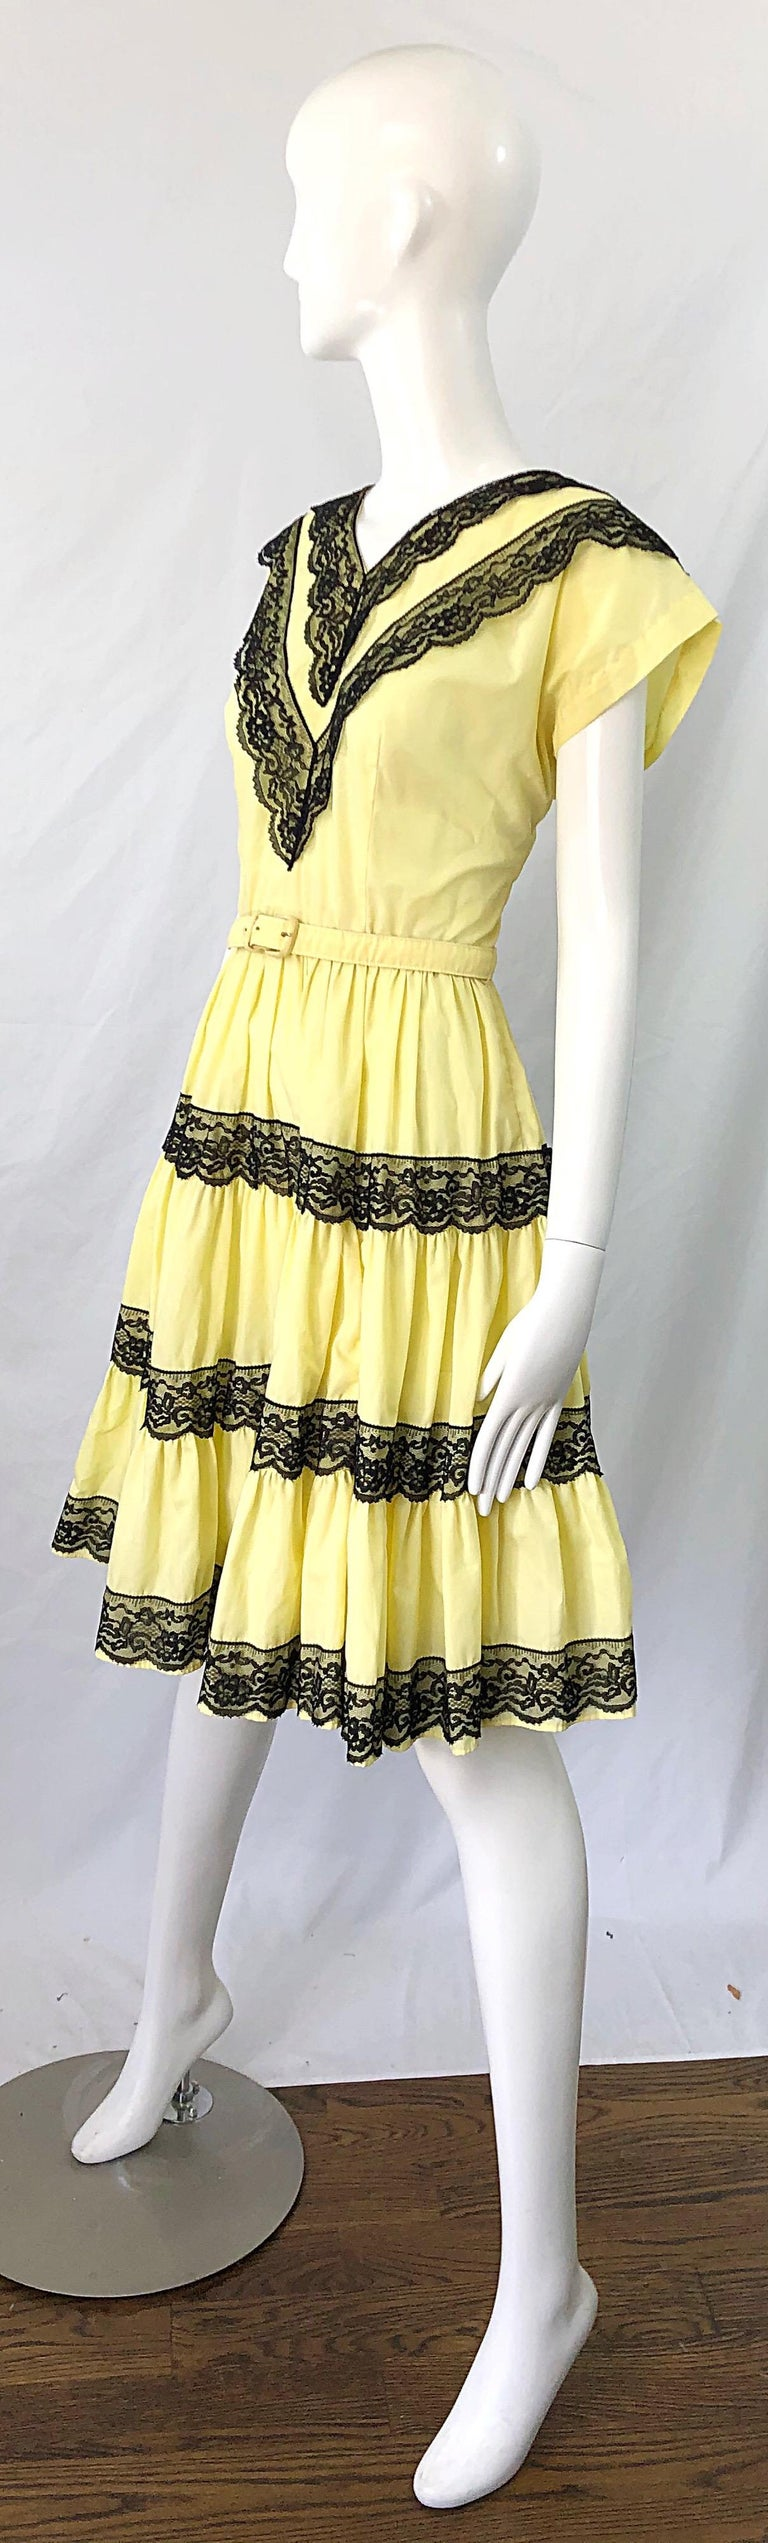 Women's 1950s Bettina of Miami Yellow + Black Cotton Lace Fit n' Flare Vintage 50s Dress For Sale